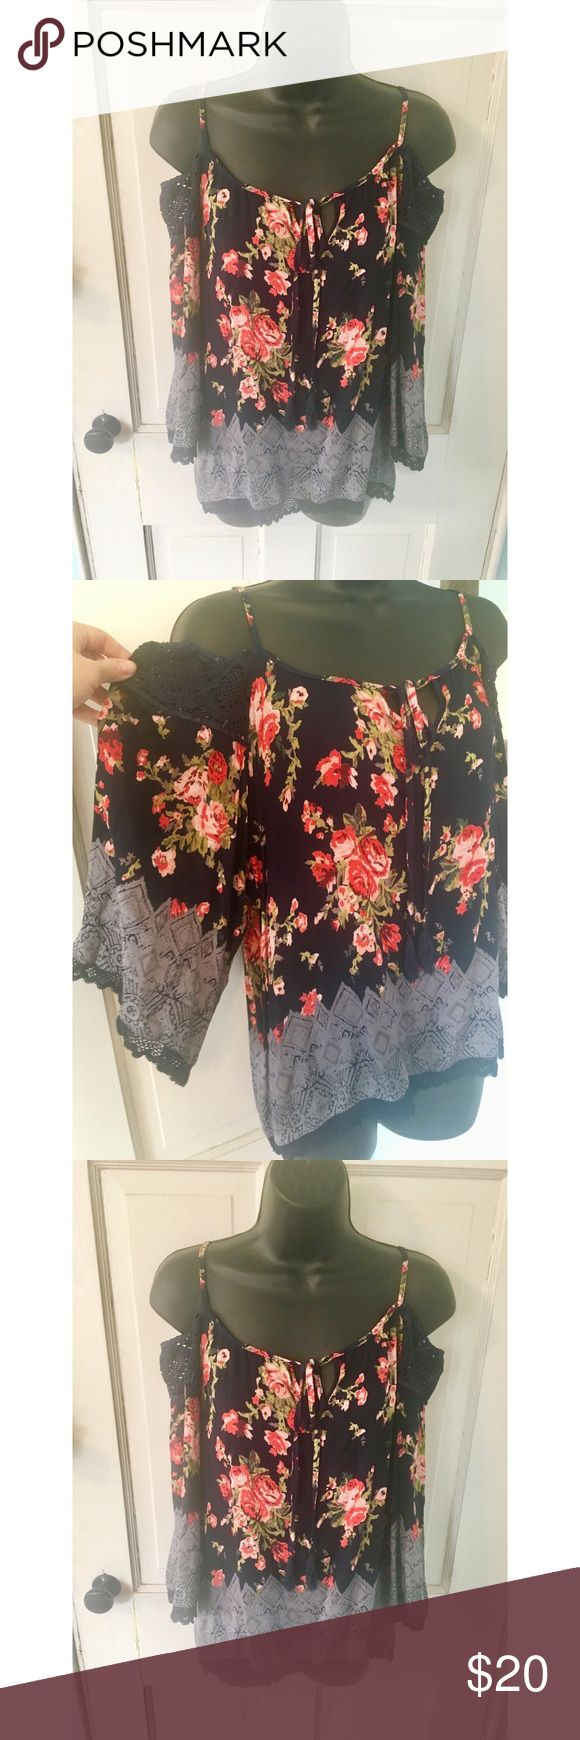 ANGIE navy blue mixed floral festival blouse ANGIE navy blue mixed floral and print off the shoulder blouse with crochette detailing. Great for everyday spring wear or a festival! Angie Tops